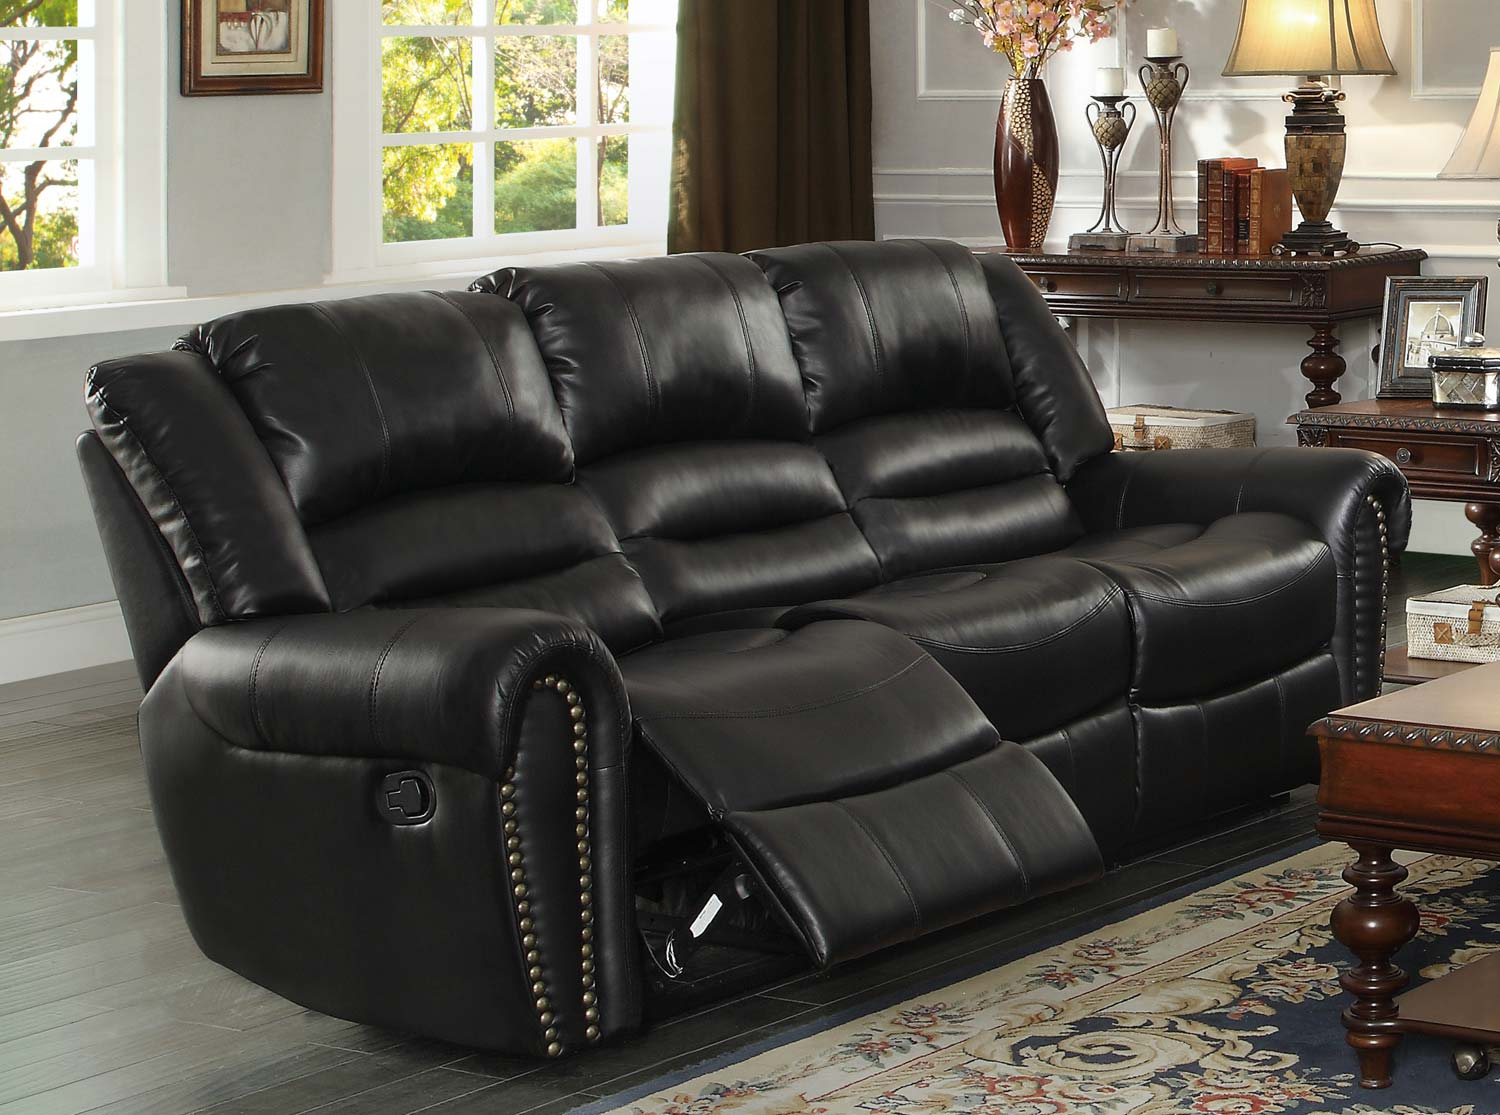 Homelegance Center Hill Double Reclining Sofa Black Bonded Leather Match 9668blk 3 At